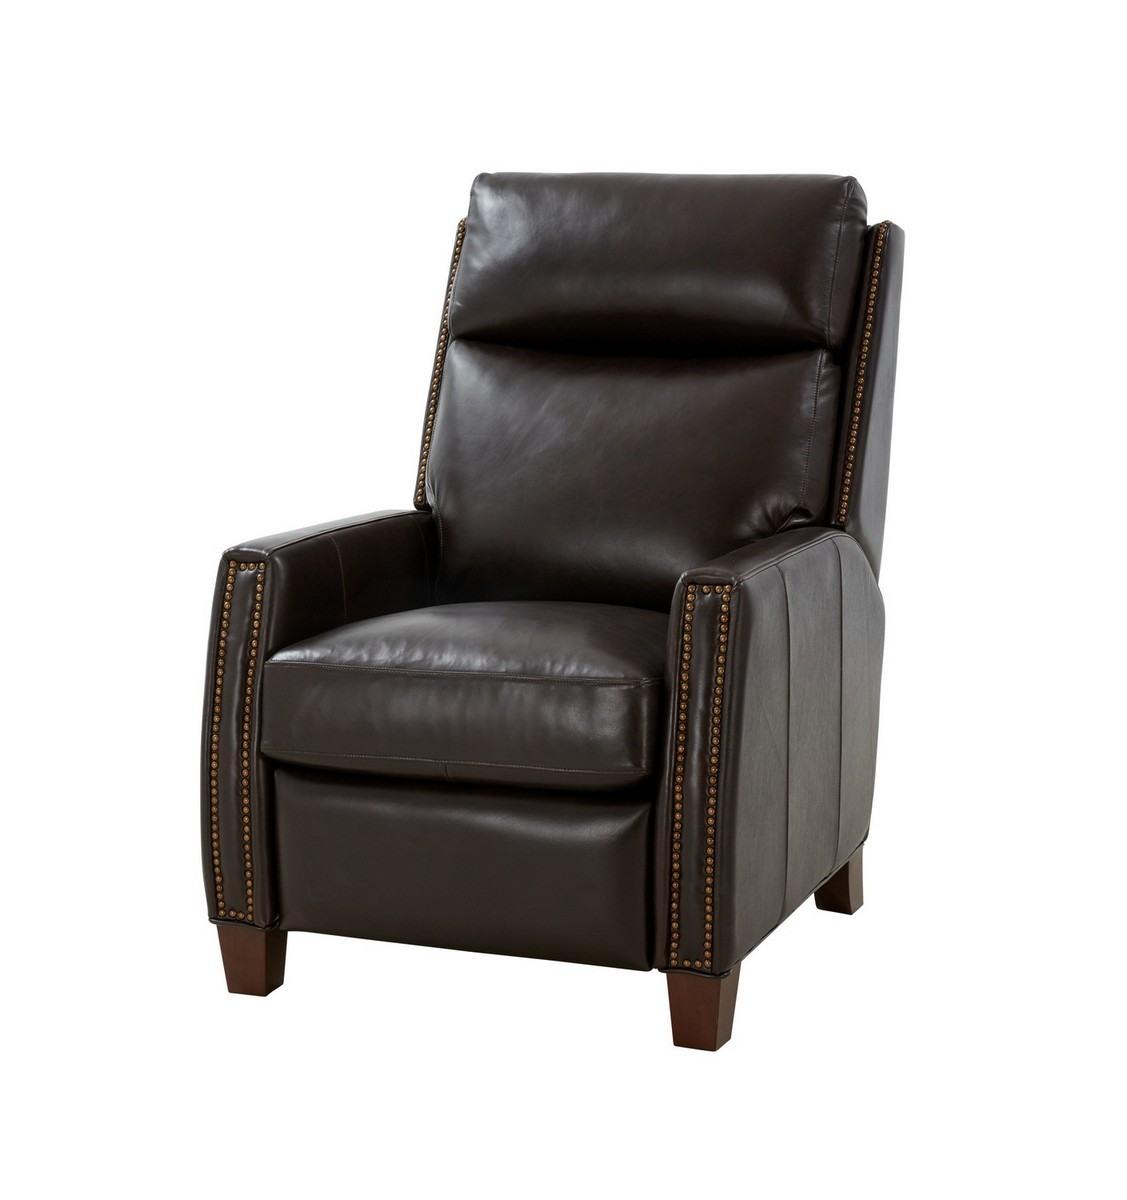 Barcalounger Anaheim Big and Tall Power Recliner Chair with Power Head Rest and Lumbar - Bennington Fudge/All Leather